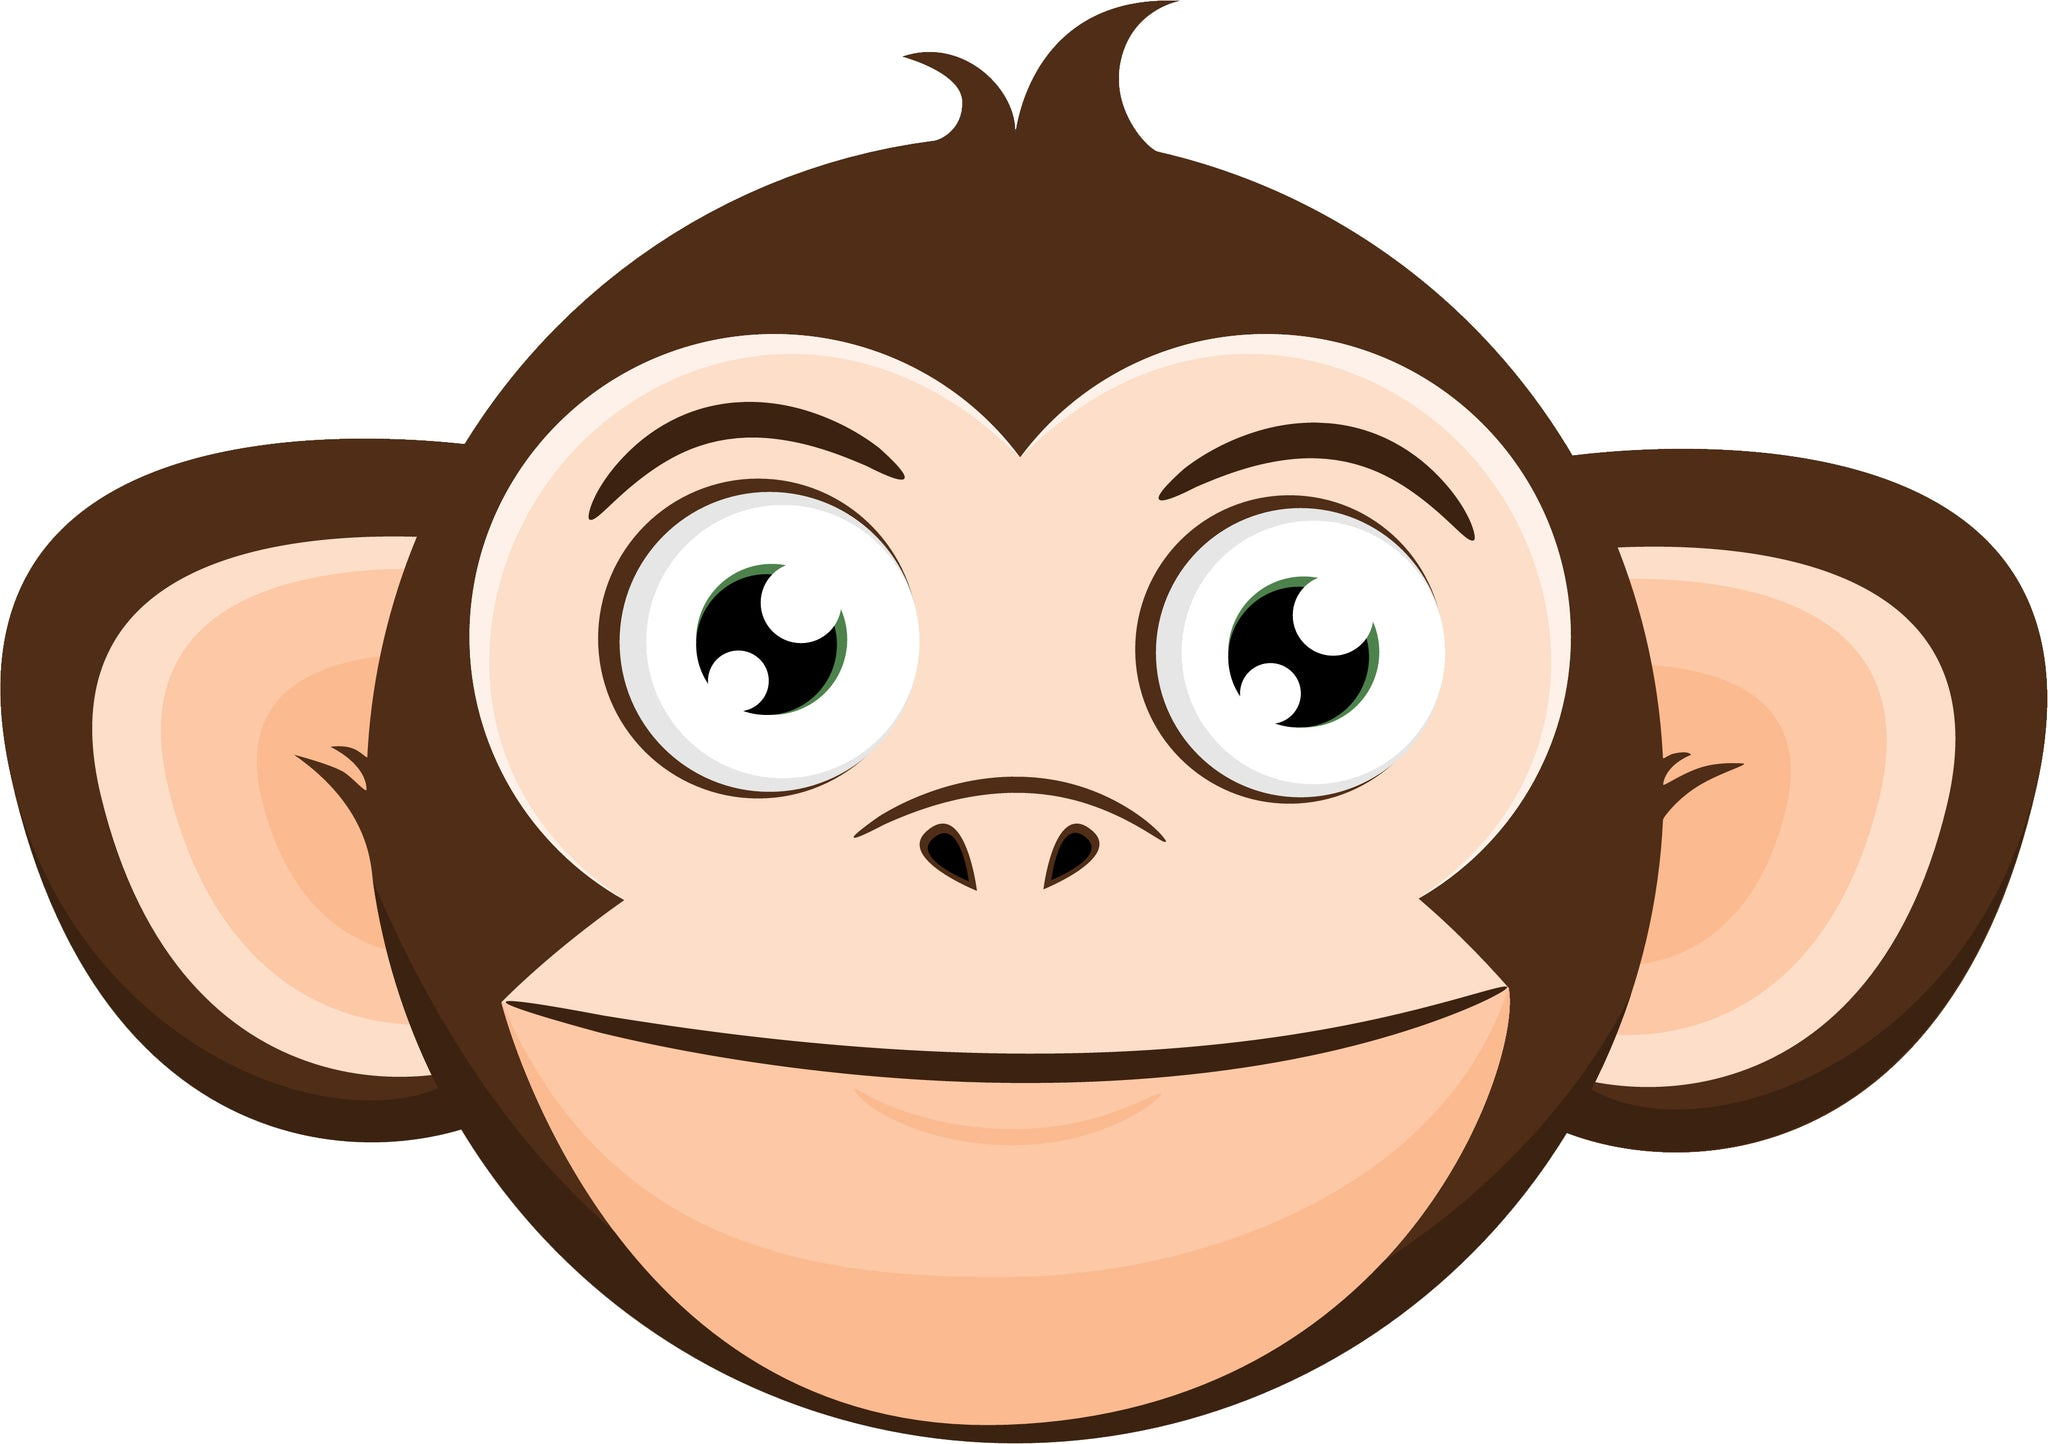 Simple Silly Curious Monkey Cartoon Emoji Head #1 Vinyl Decal Sticker